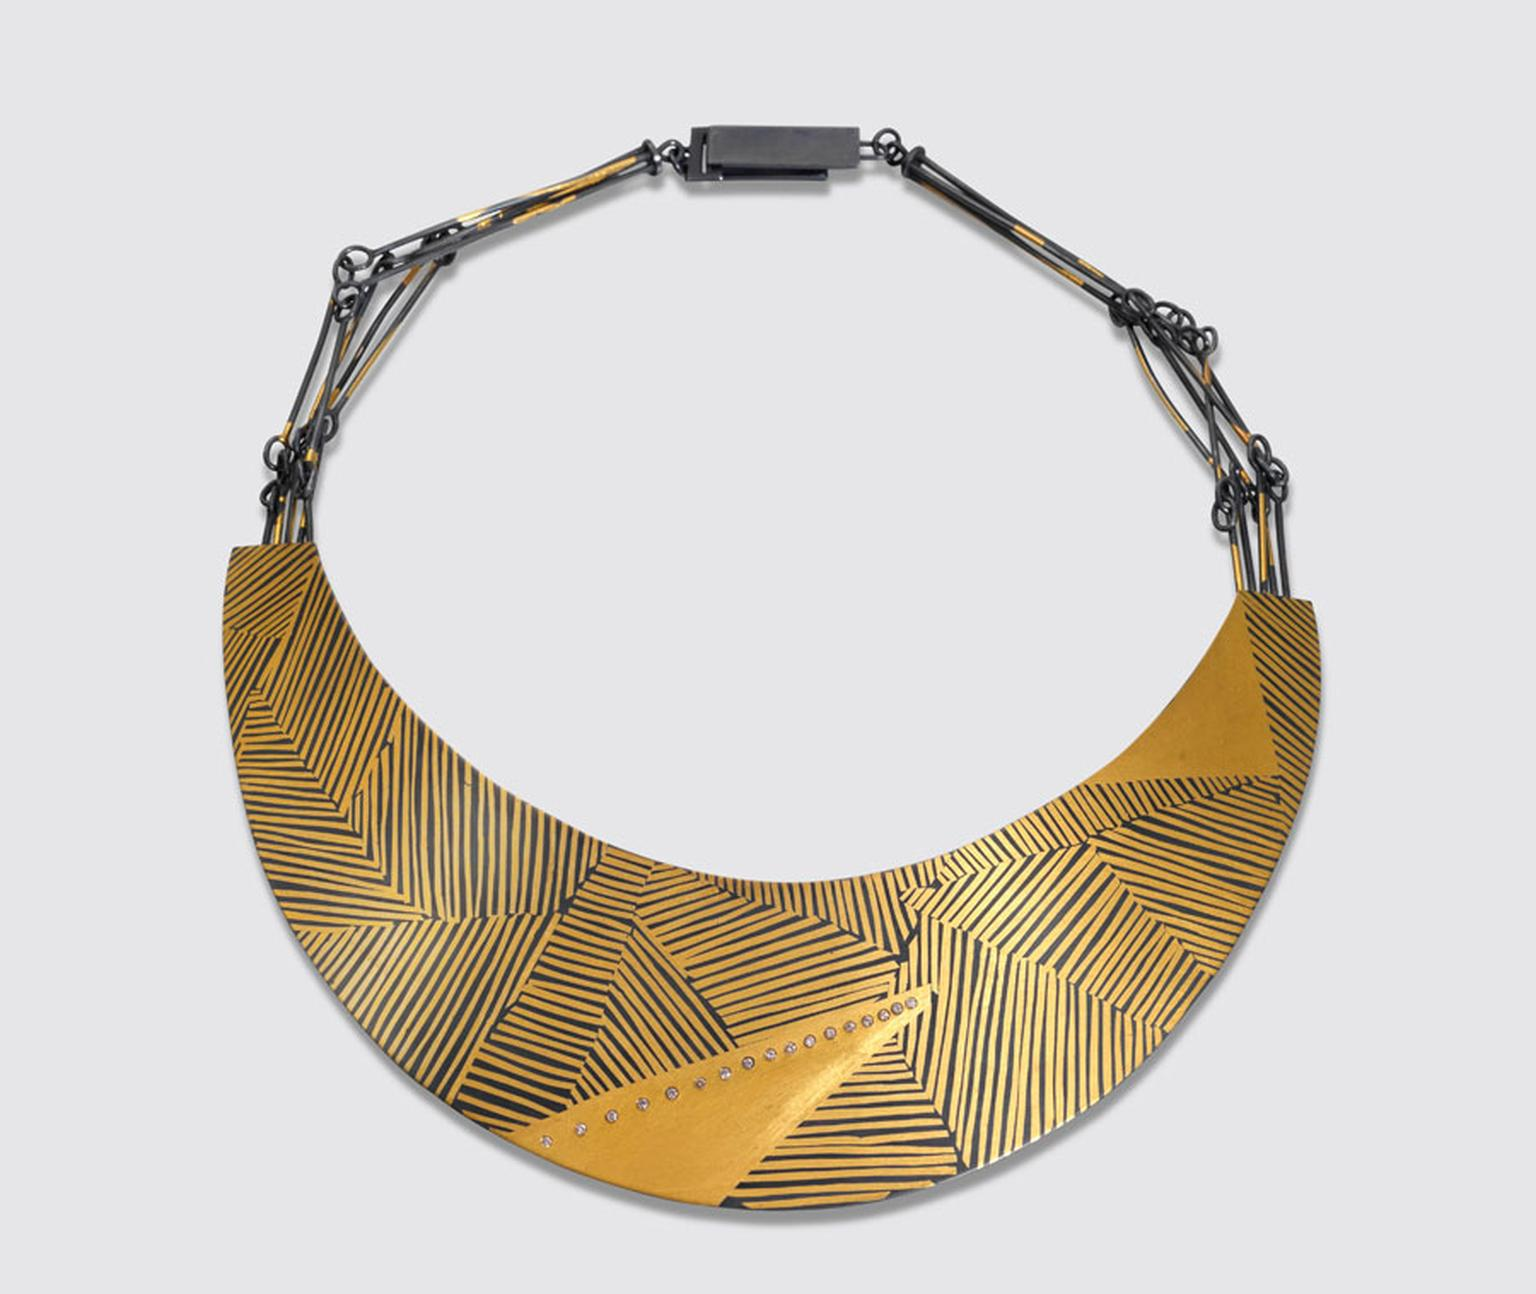 Goldsmiths-Patel-Shivani-Linear-Necklace-oxidised-silver-24k-gold-coloured-diamonds